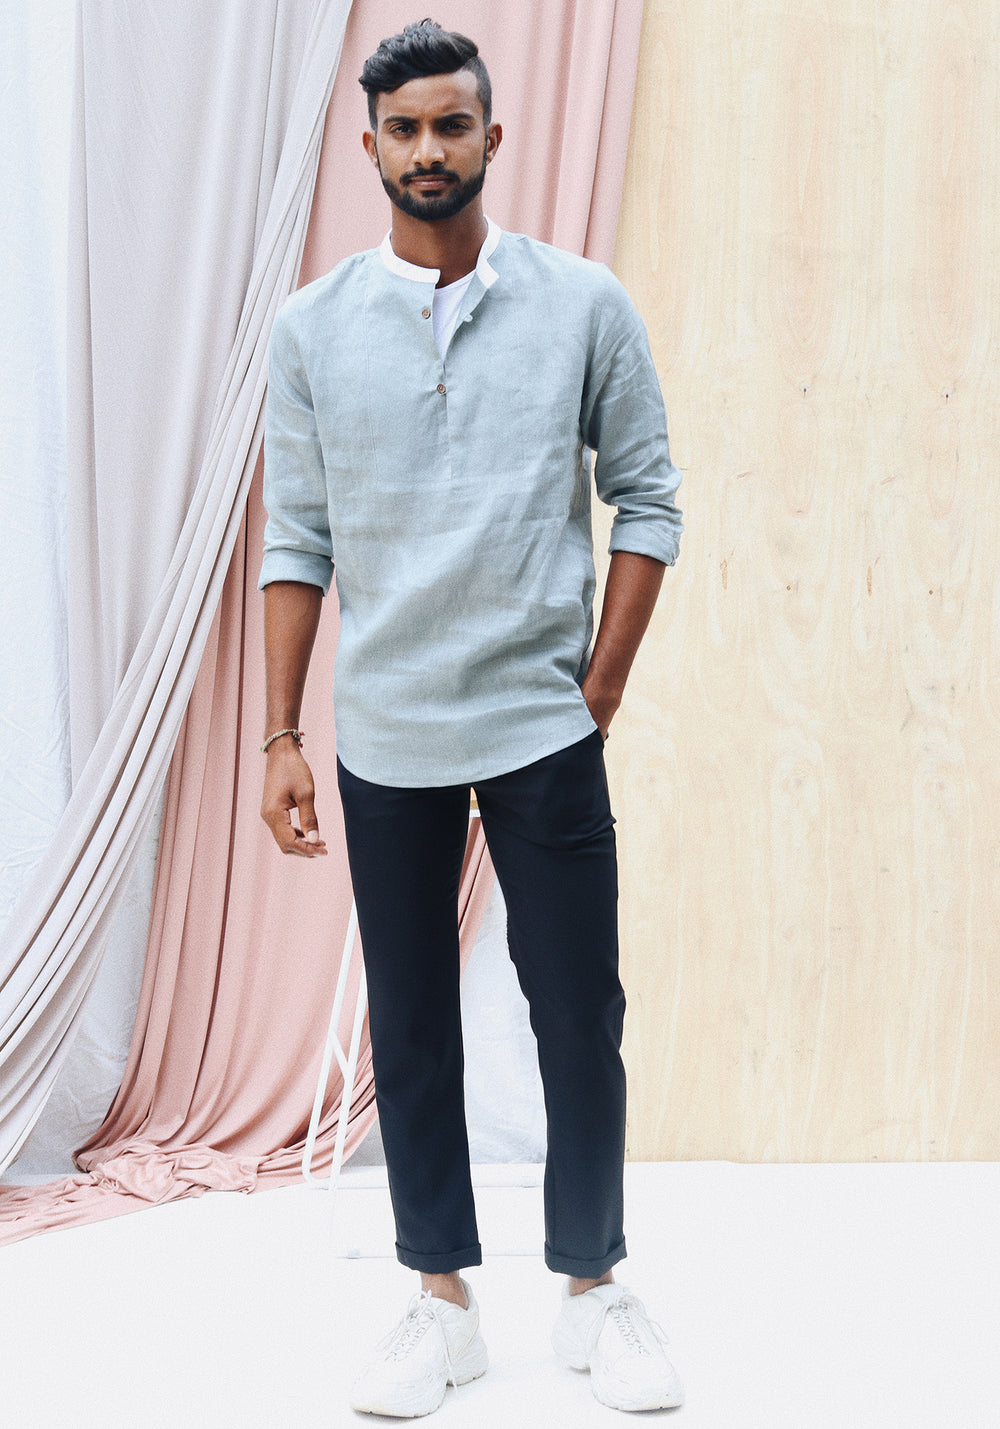 Round Neck Relaxed fit shirt